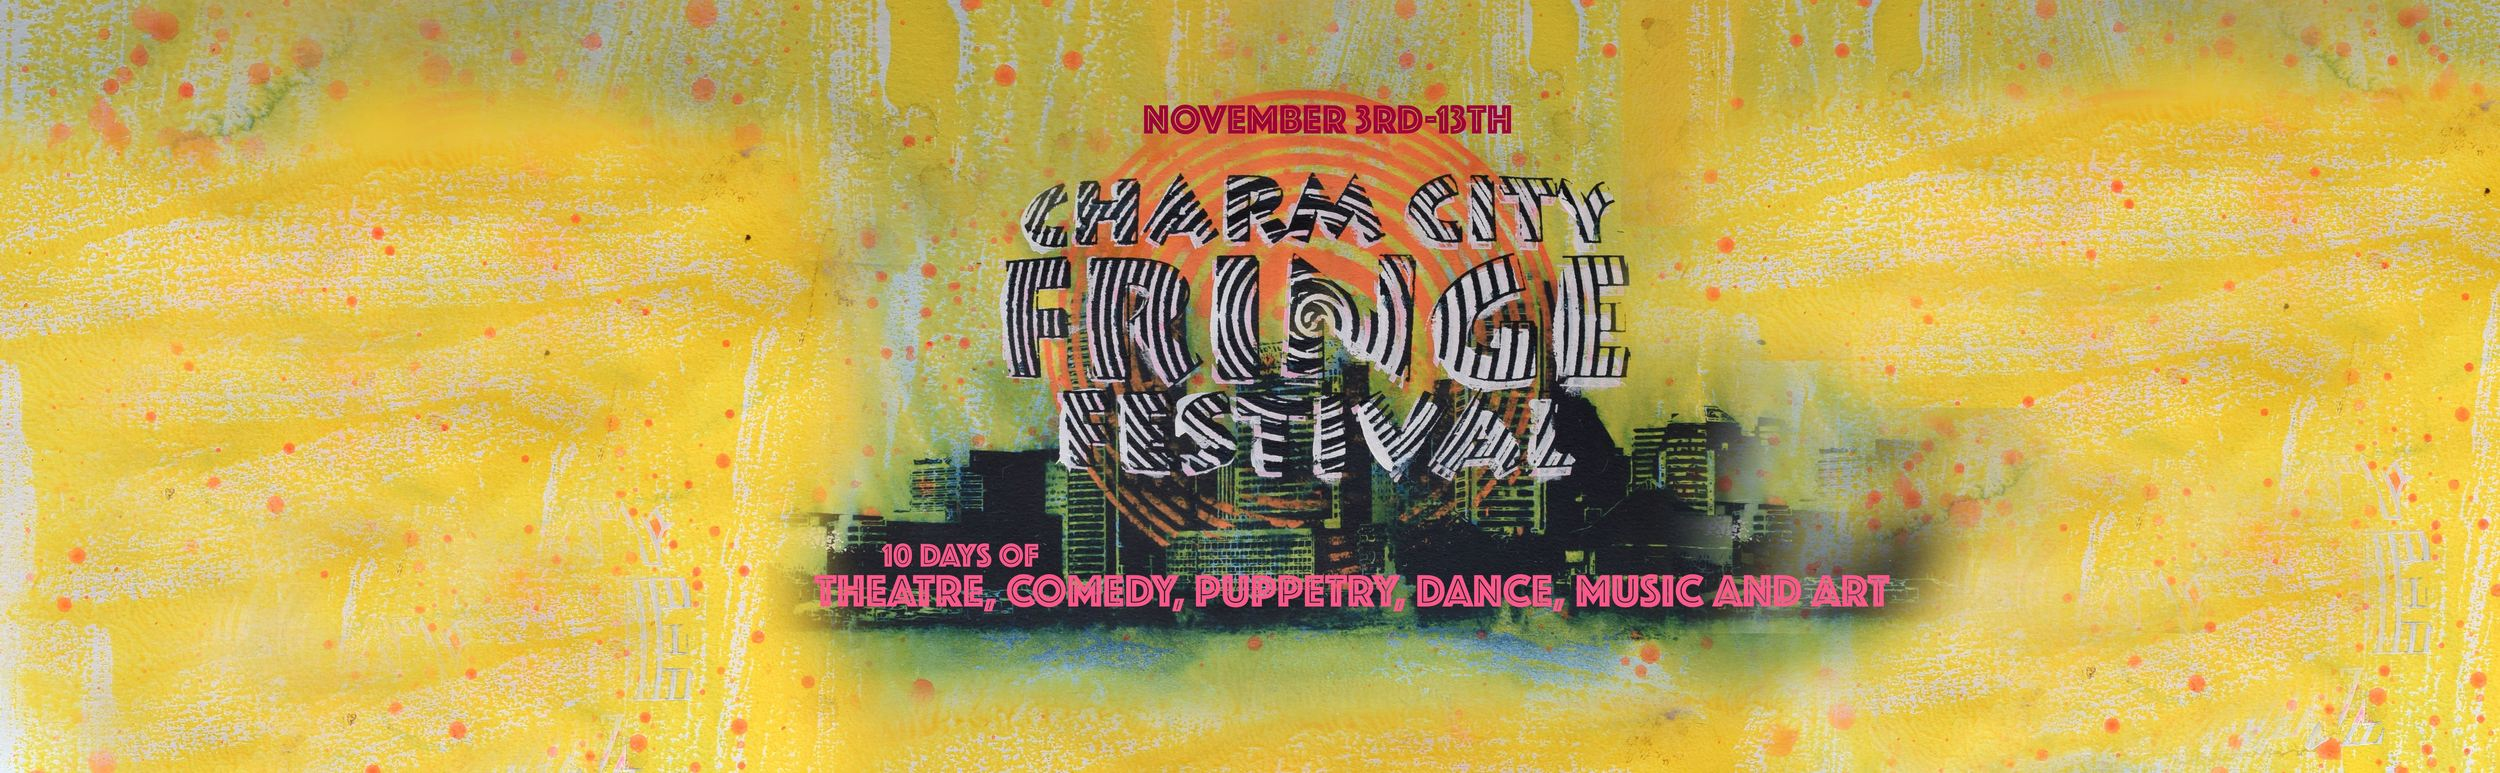 The 5th annual Charm City Fringe Fest returns to Baltimore November 3-13th at venues across Station North and Hampden. Visit facebook.com/charmcityfringe to stay up to date!